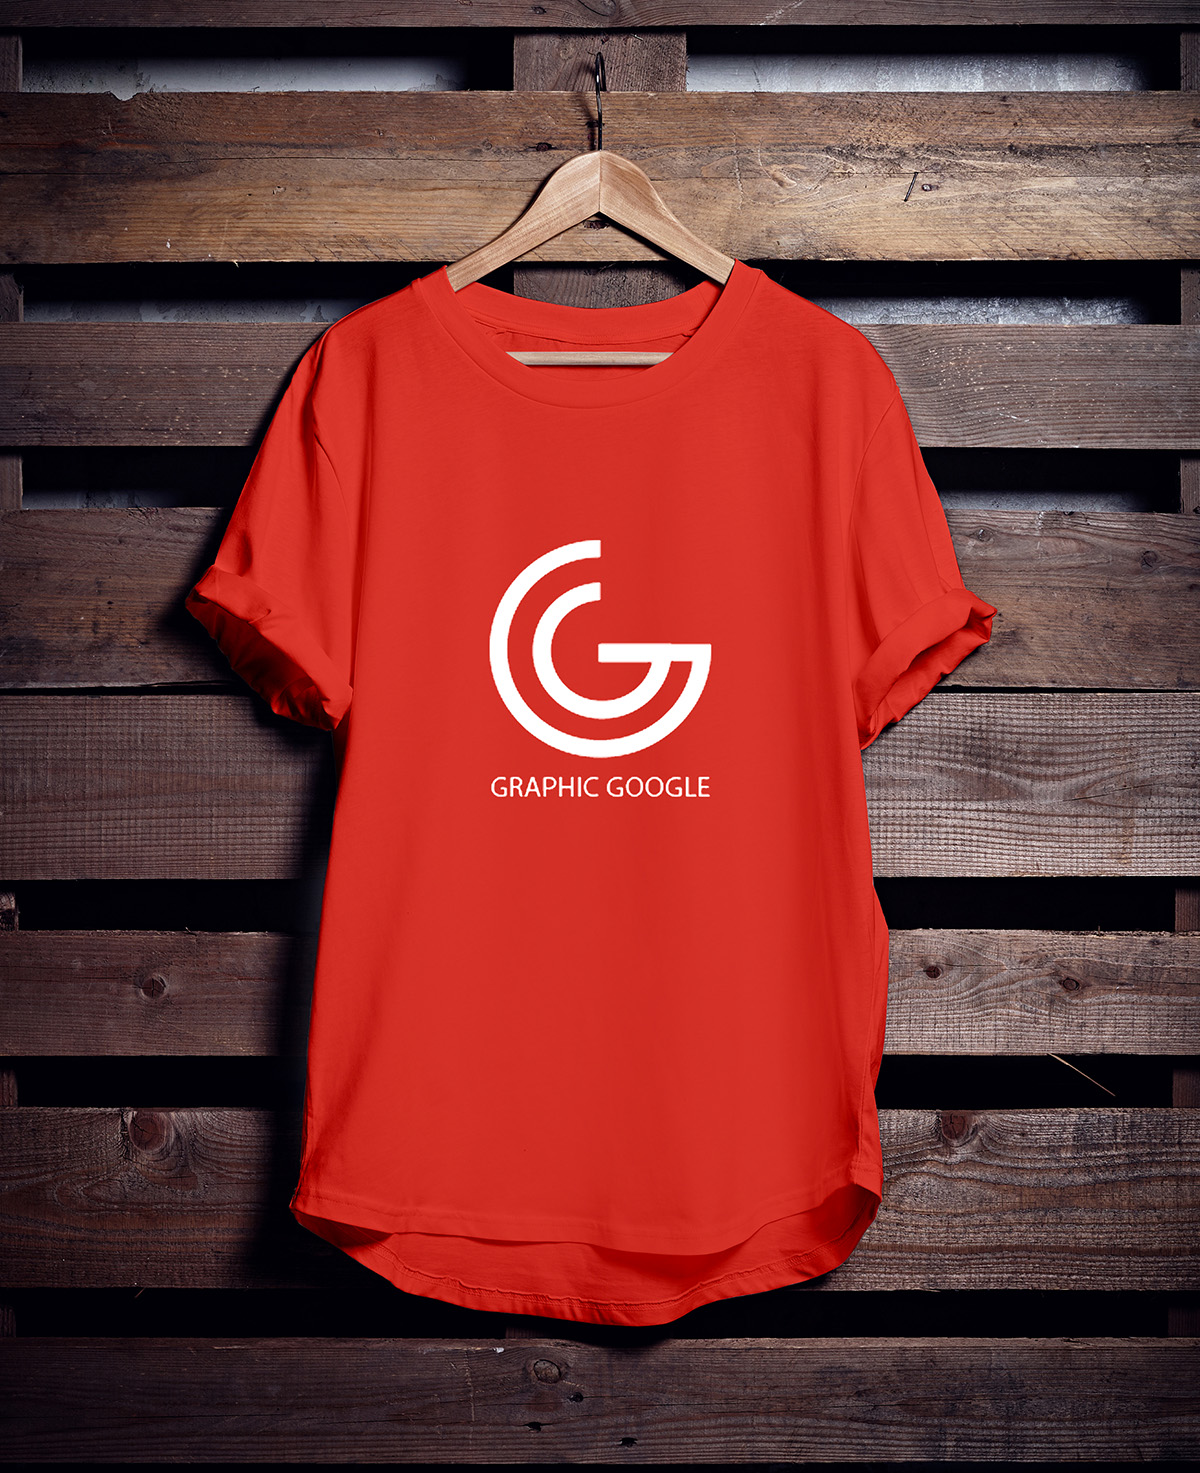 Free hanging t shirt mockup graphic google tasty for Free polo shirt mockup